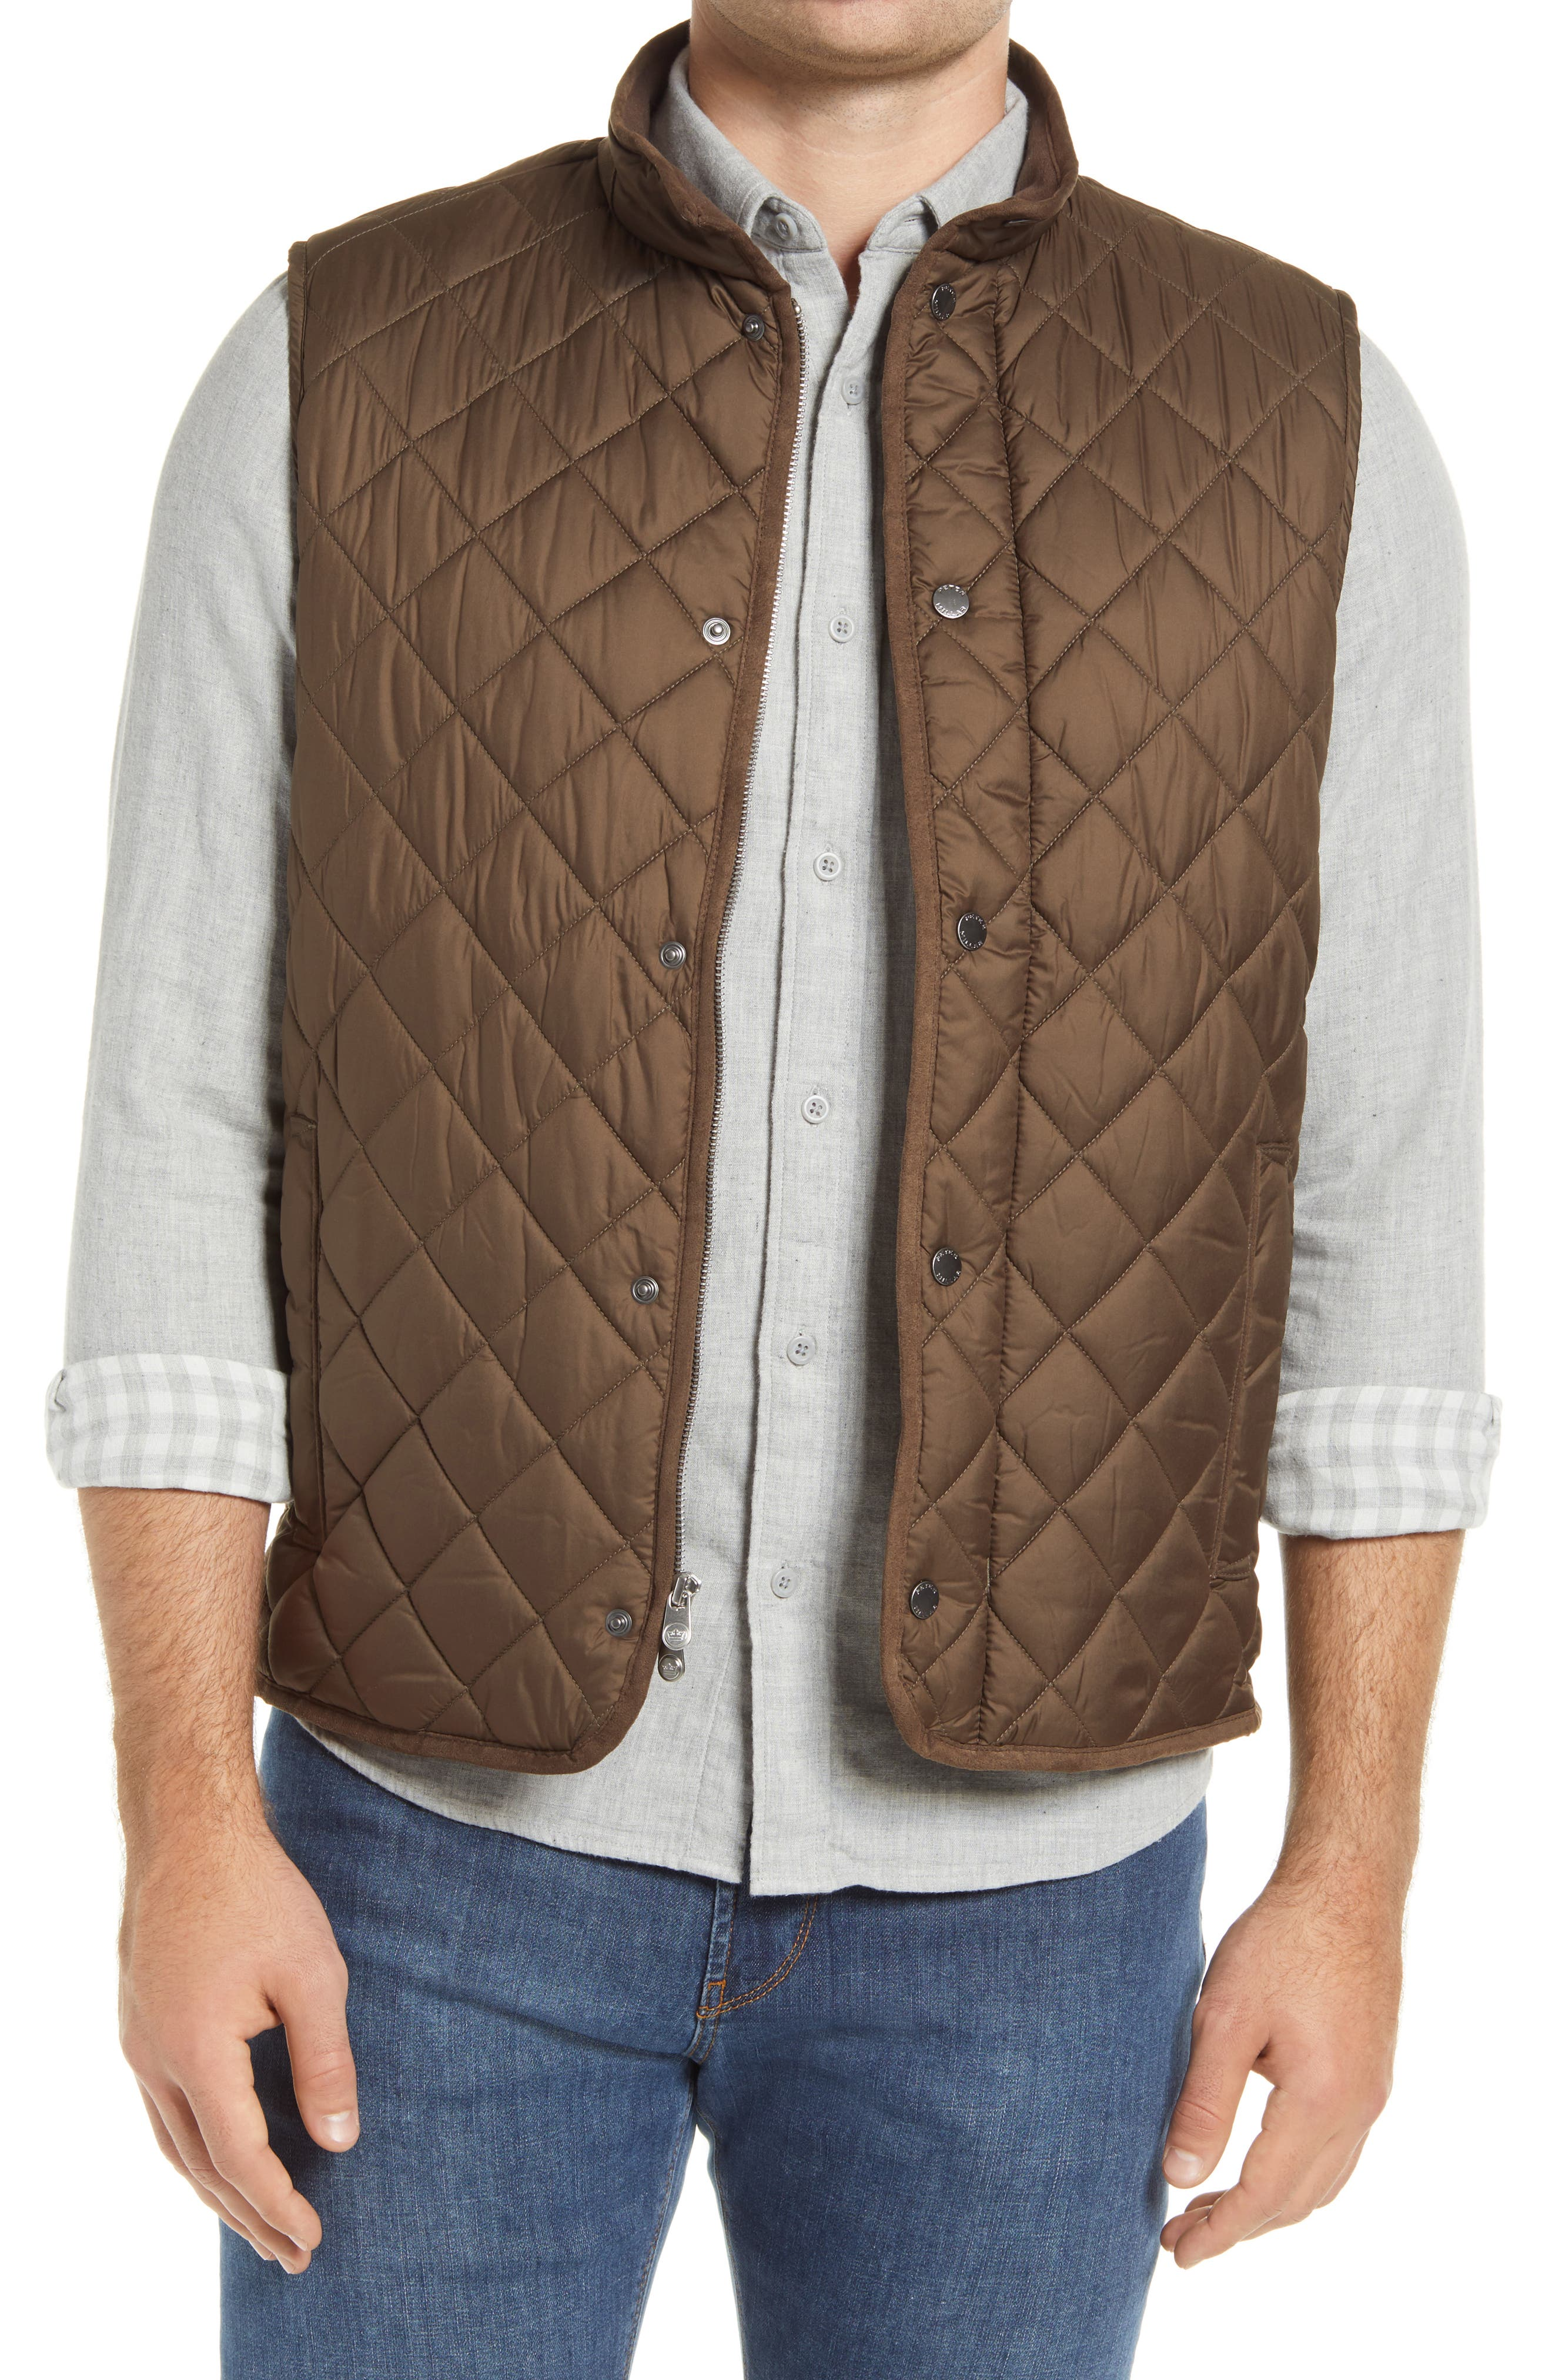 Infused with wax polymers, the diamond-quilted fabrication of this lightweight vest takes on windproof and water-resistant properties to keep you protected and the game continuing. Style Name: Peter Millar Essex Quilted Vest. Style Number: 5332650. Available in stores.